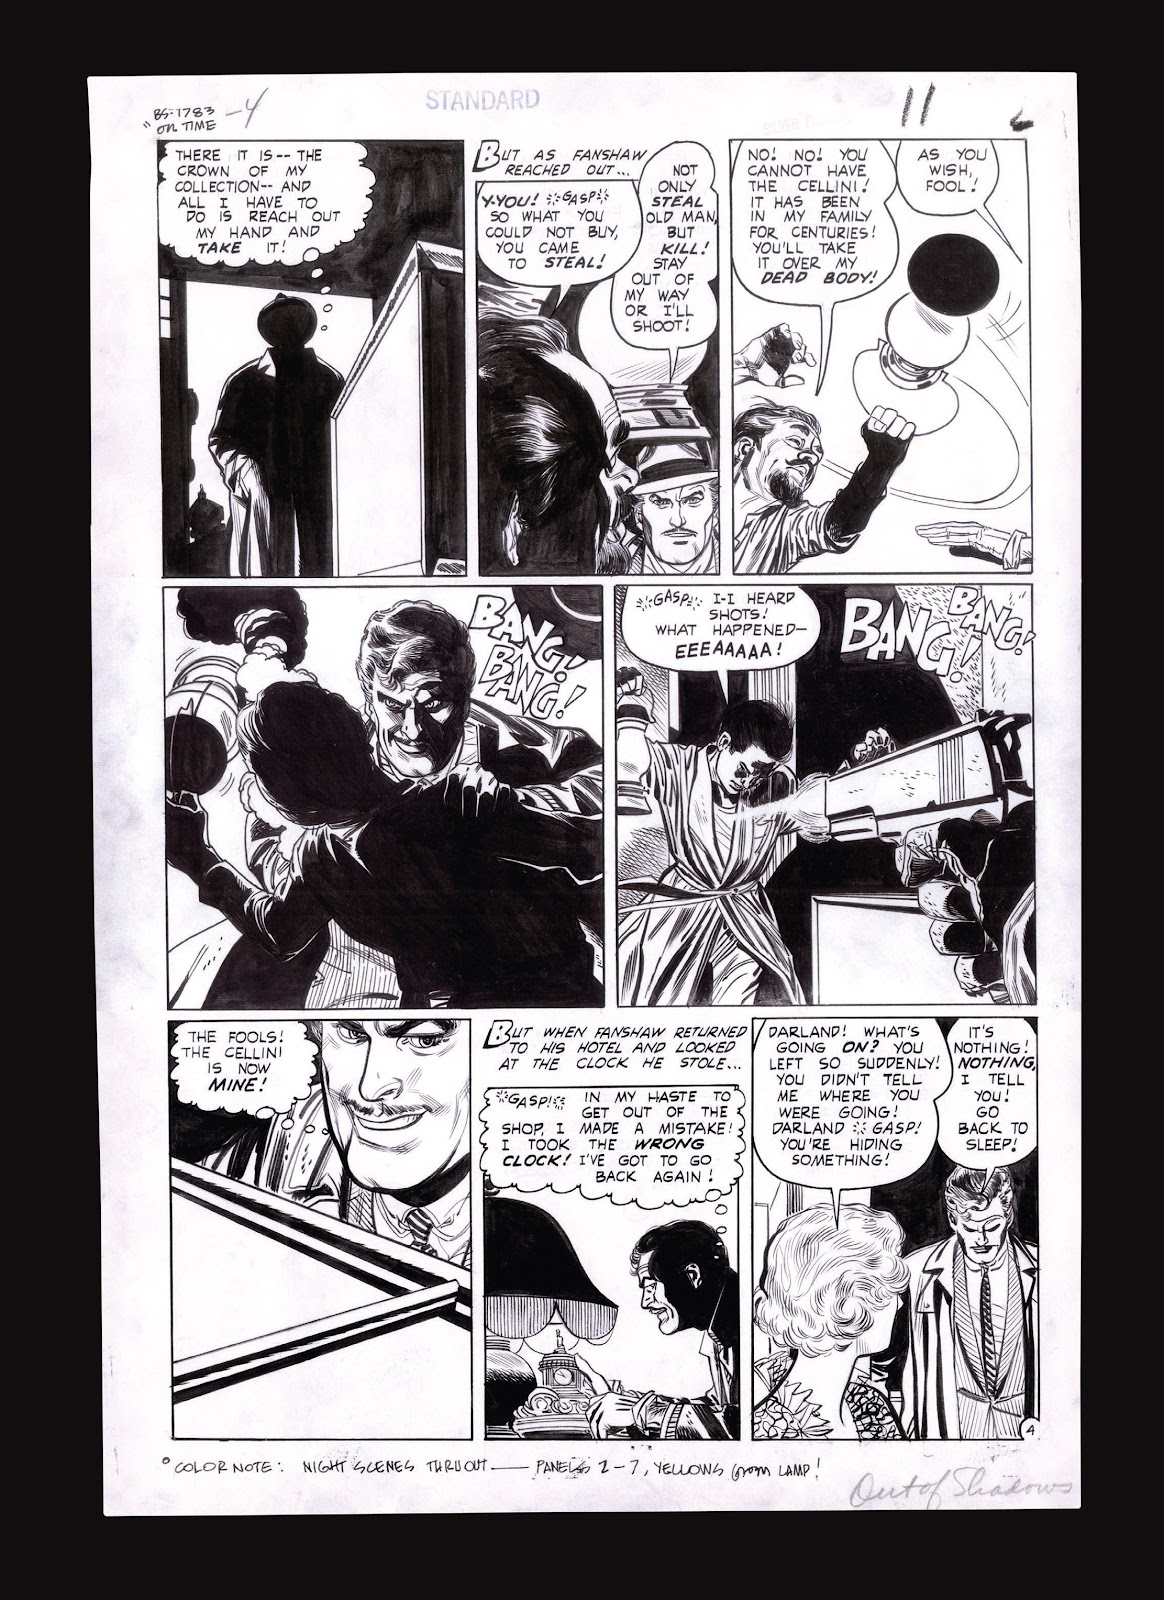 Read online Setting the Standard: Comics by Alex Toth 1952-1954 comic -  Issue # TPB (Part 4) - 132